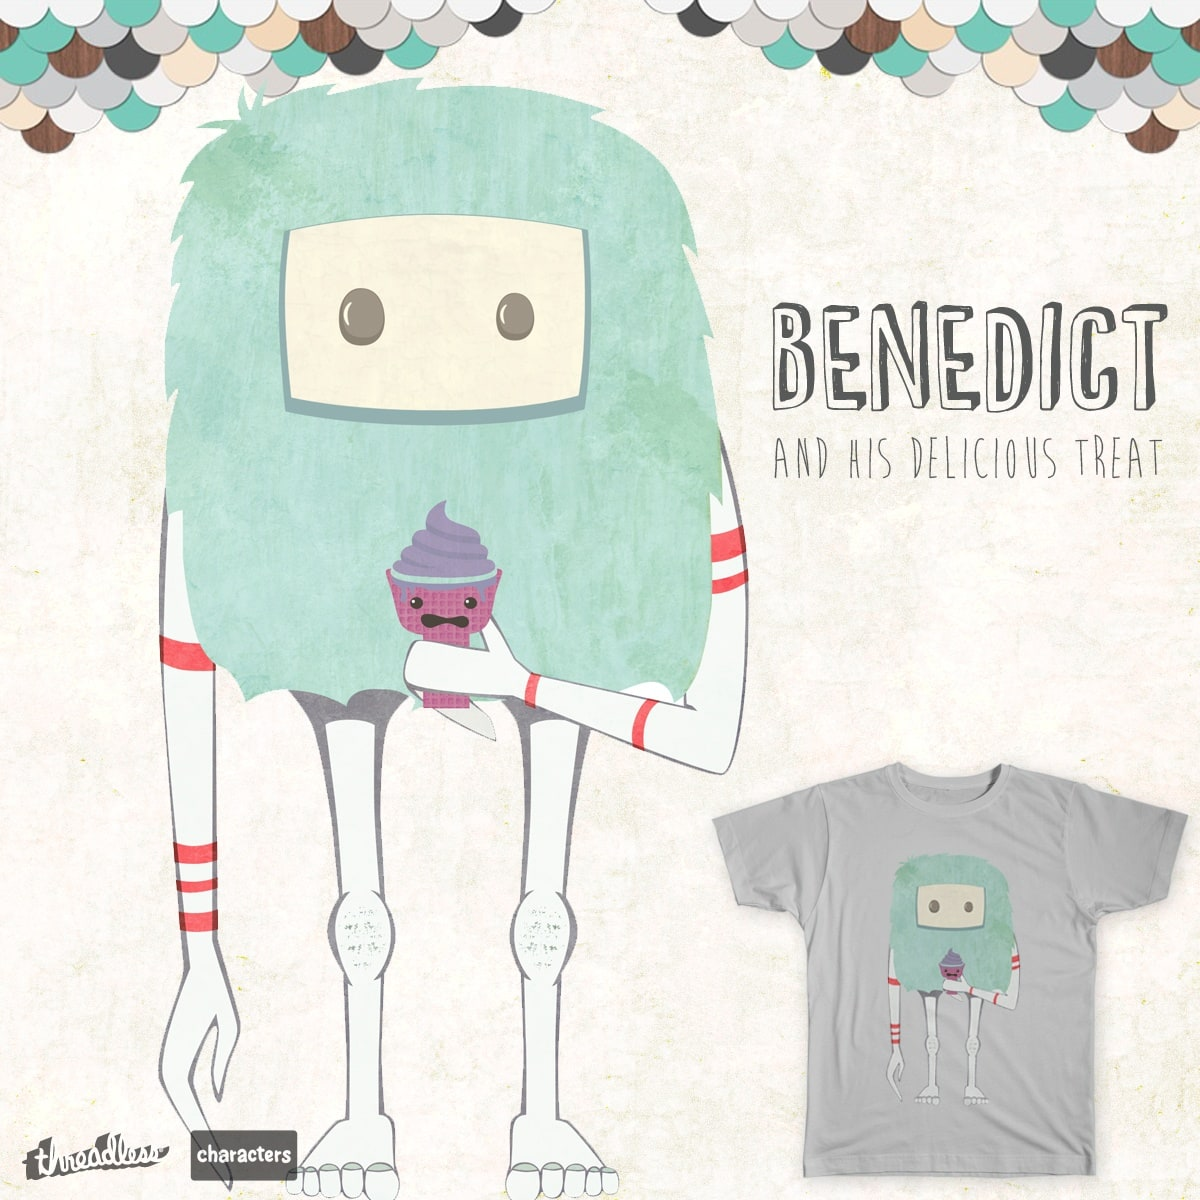 Benedict and His Delicious Treat by uniquelyrefined on Threadless